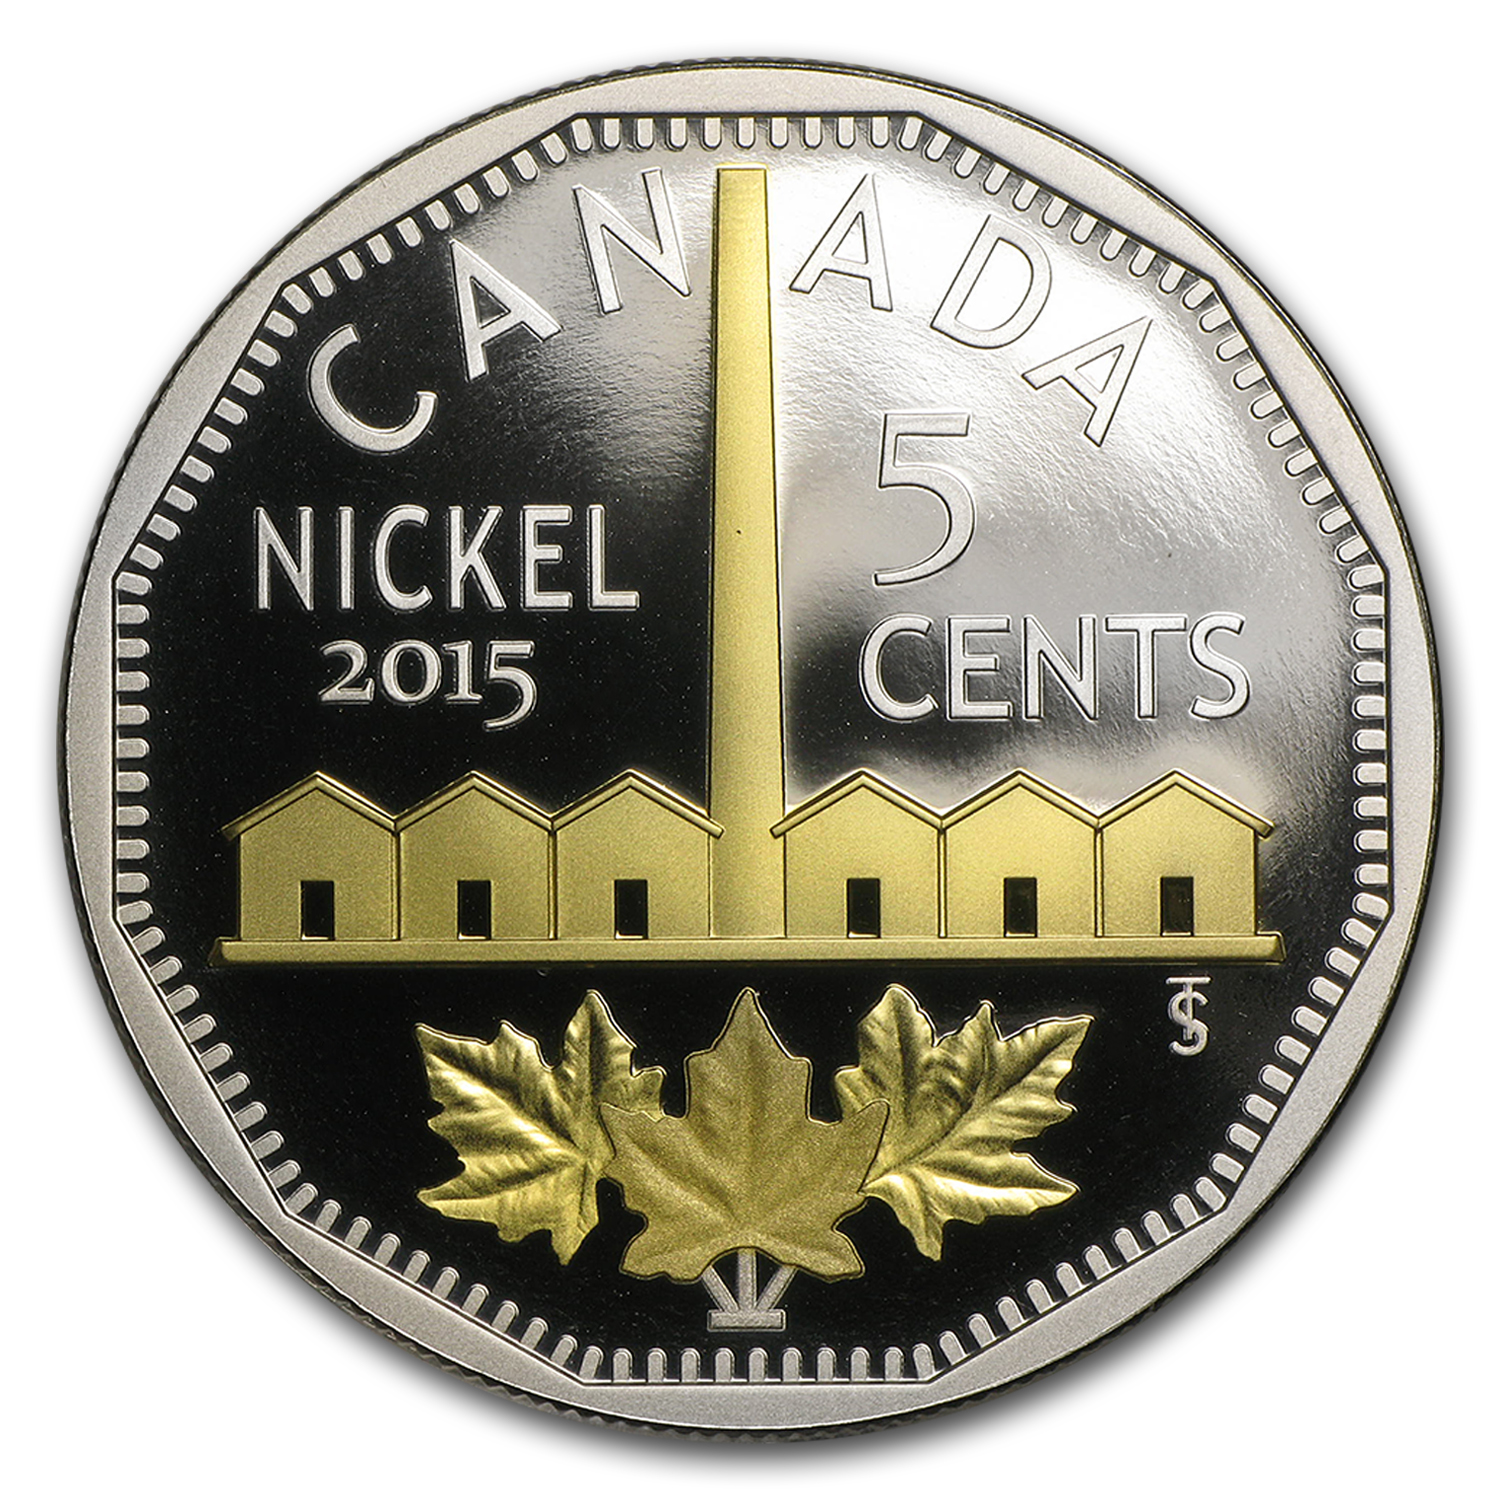 2015 Canada Silver Legacy of the Canadian Nickel (Identification)